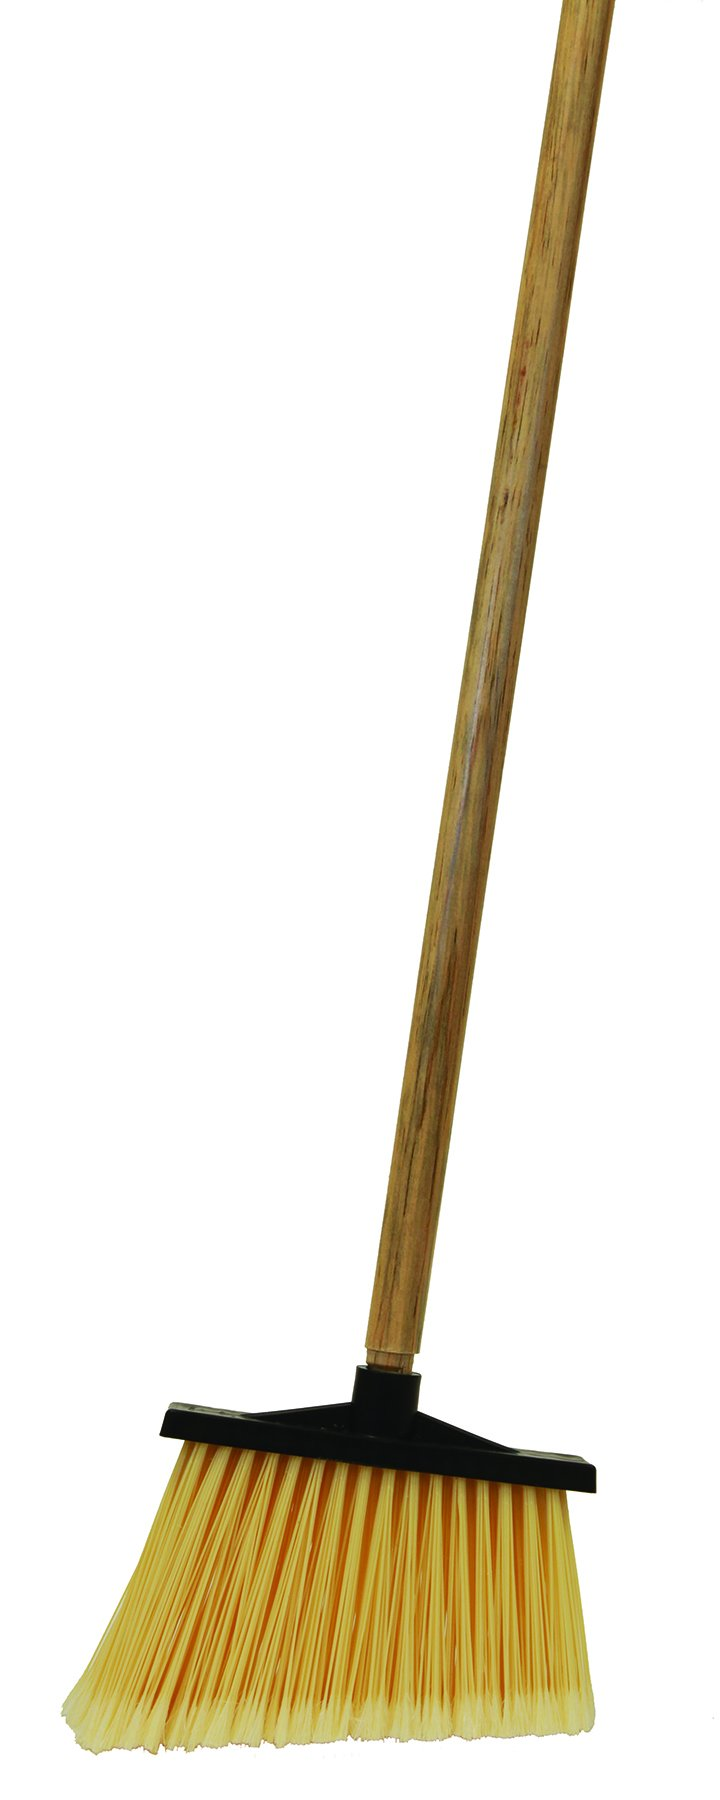 O'Cedar Commercial 6404-WLNS Small Institutional Angle Broom (Pack of 12)